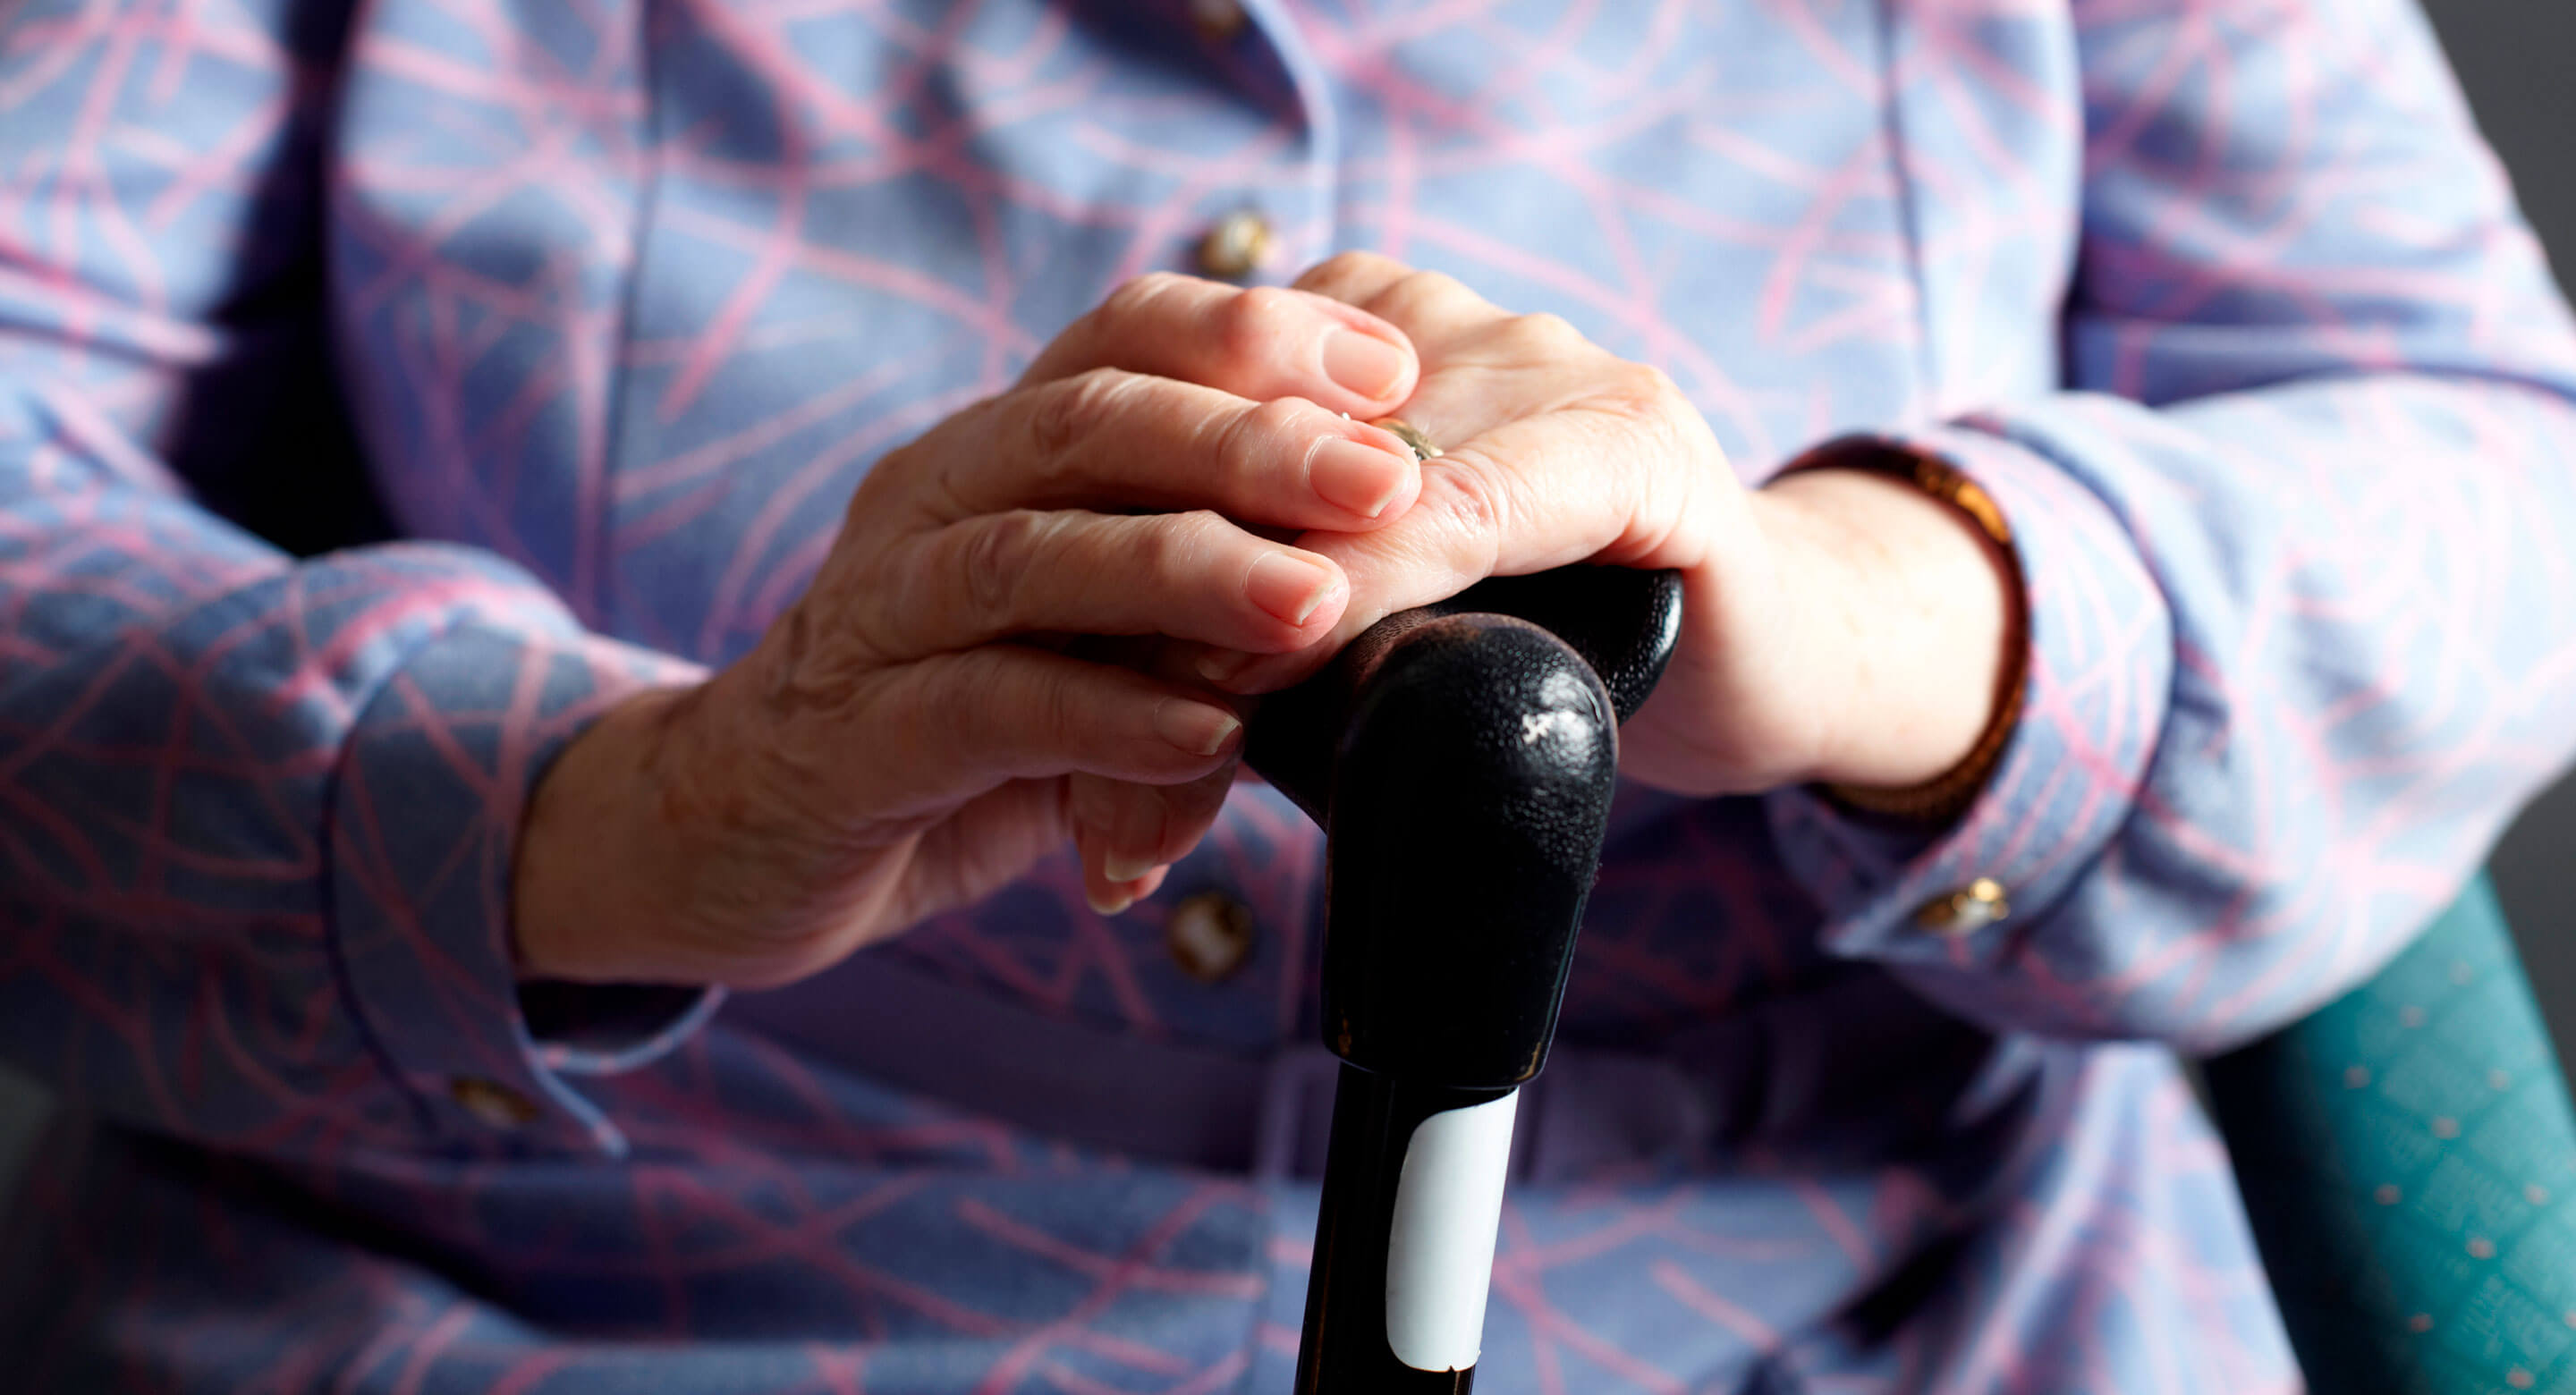 Closeup of hands of elderly woman holding cane.